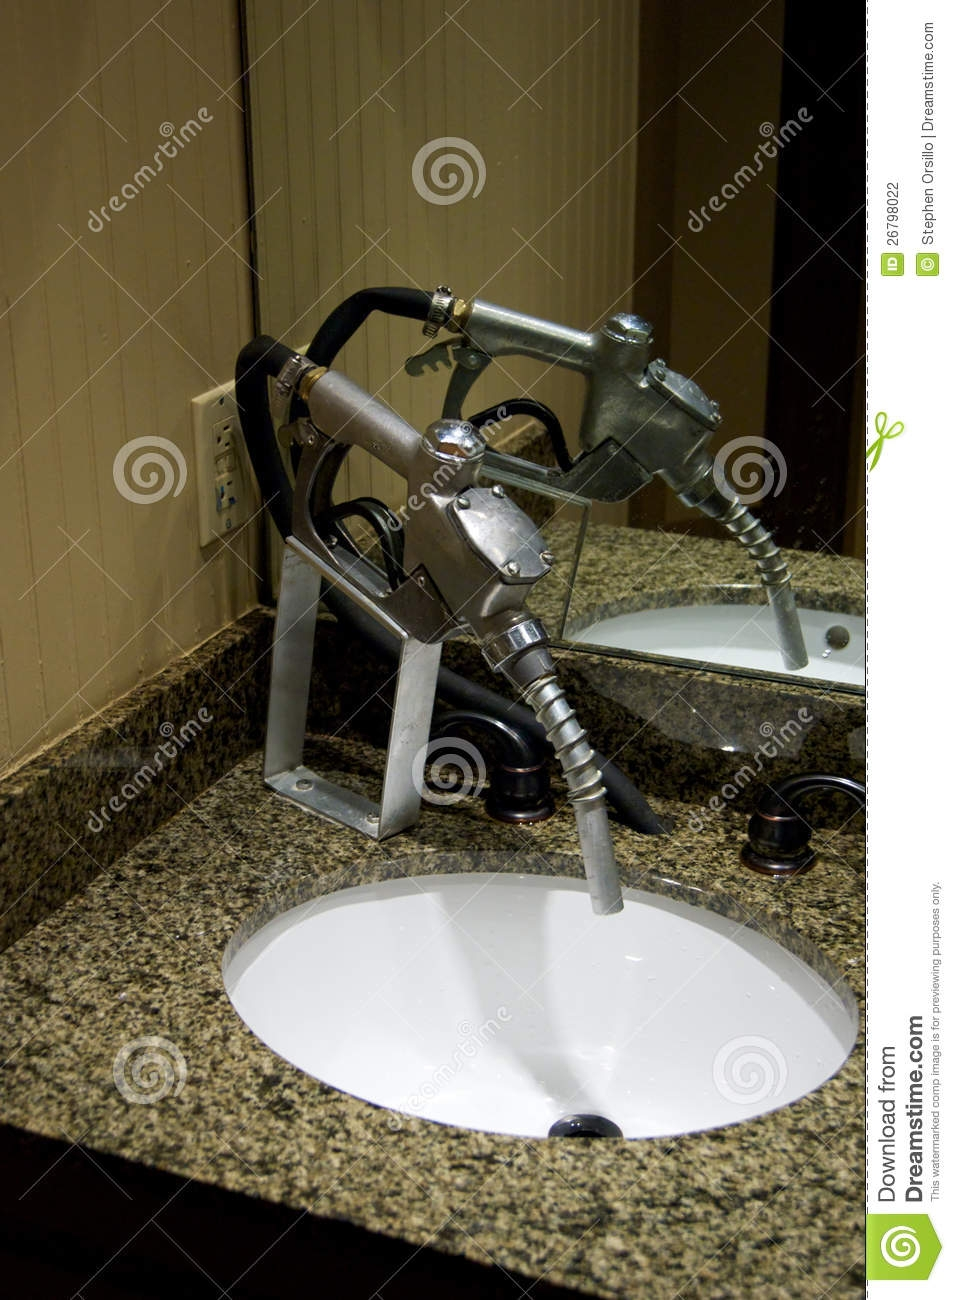 Ideas, sink faucet that looks like a water pump sink faucet that looks like a water pump tire sink with gas pump faucet best sink decoration 955 x 1300  .